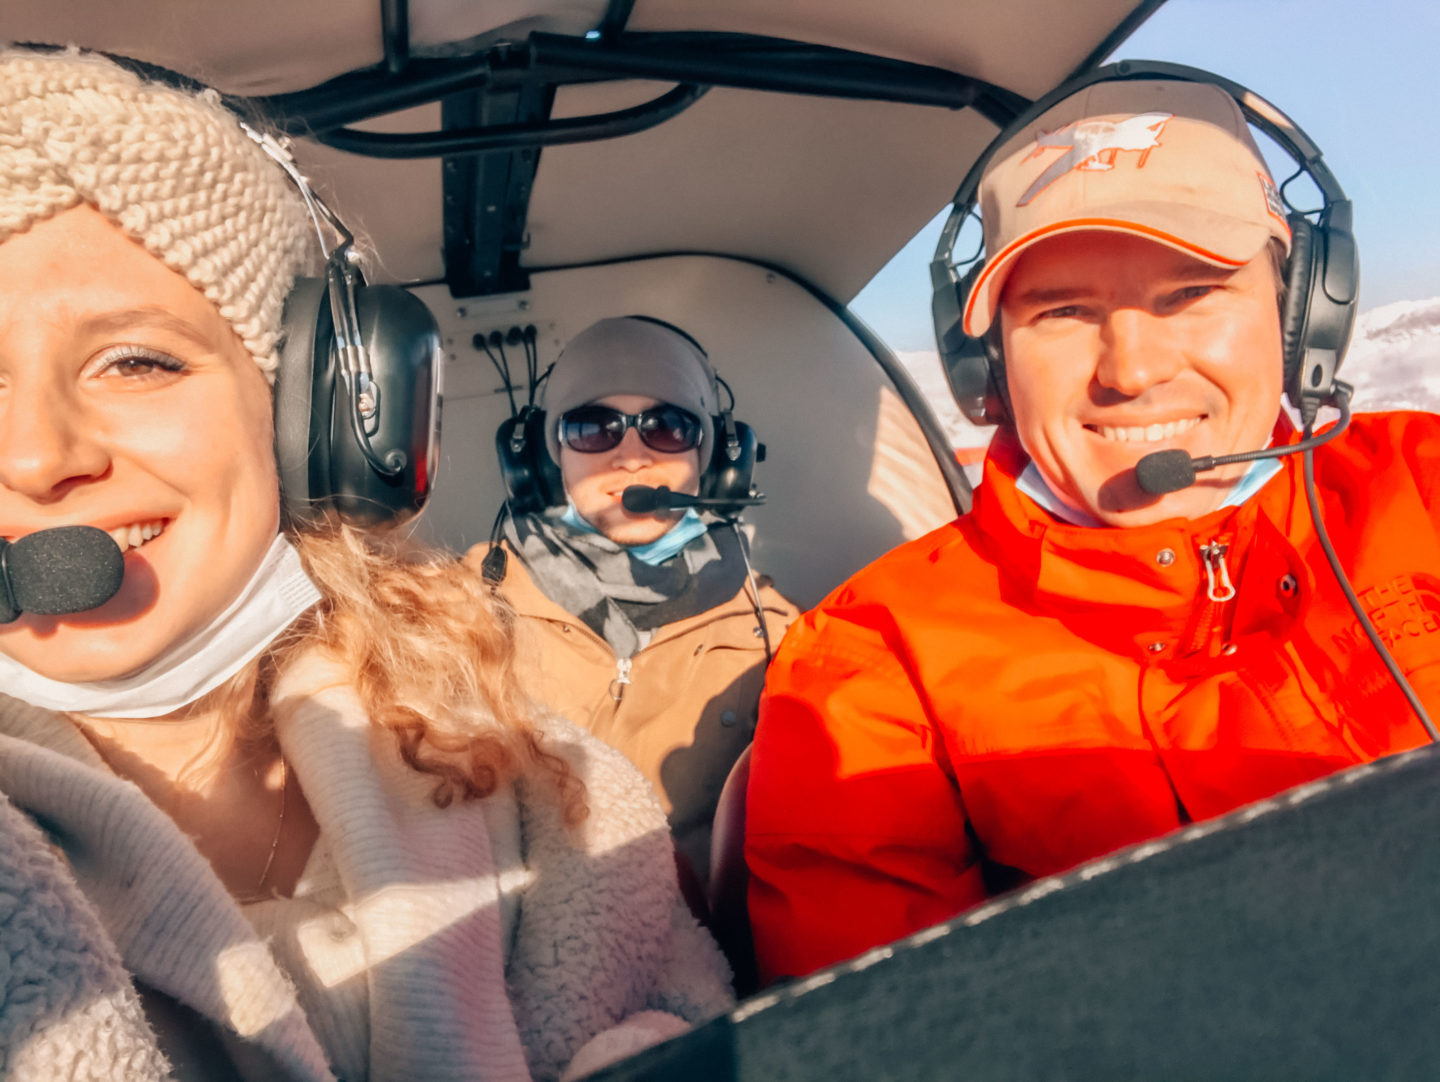 Souvenir from the flight with our pilot from Aérocime